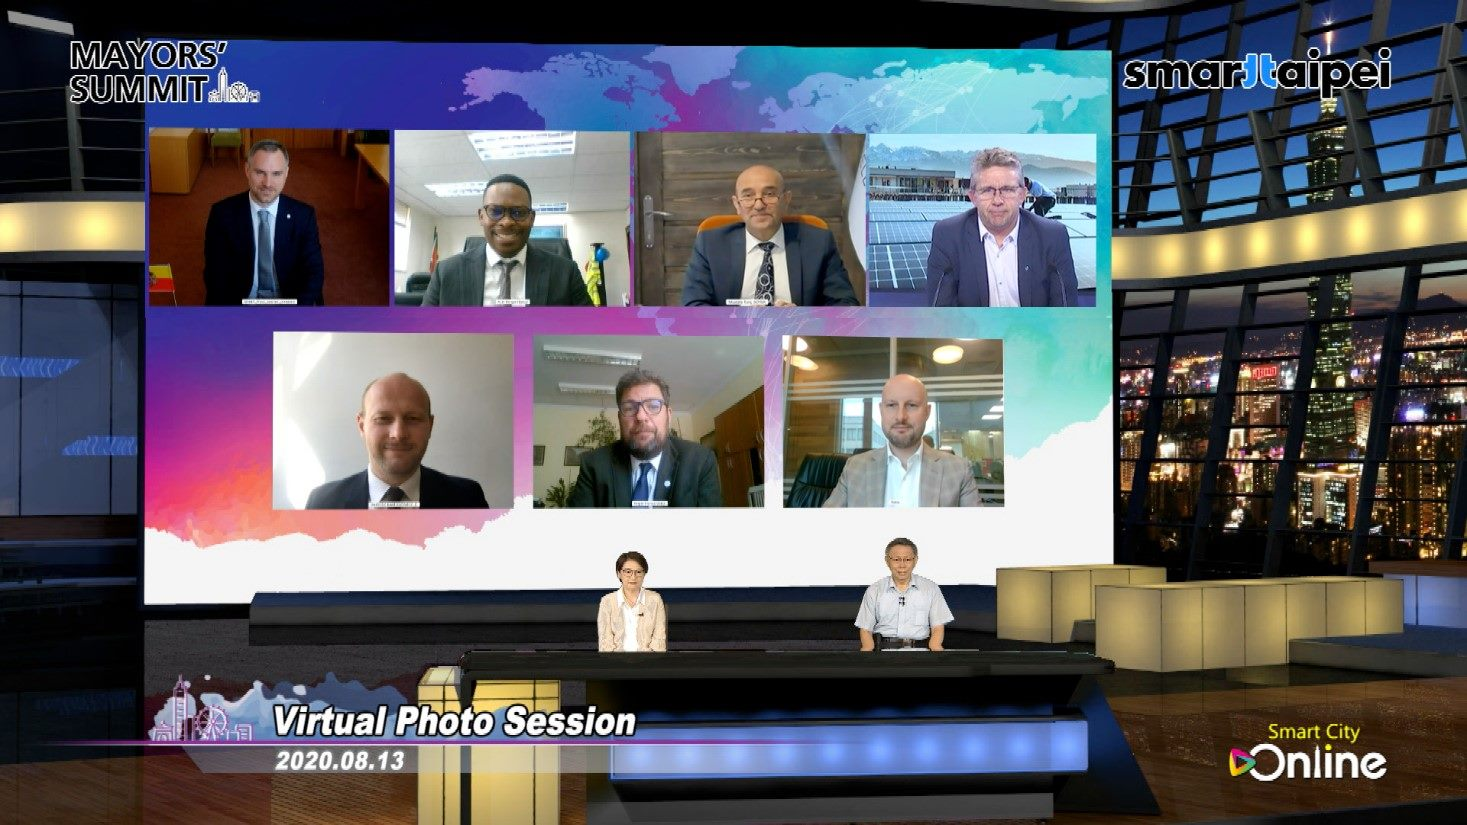 2020 Mayors' Summit (online) engaged mayors, deputy mayors and city representatives from Czech, France, Hungary, South Africa, Turkey, Poland, and Russia